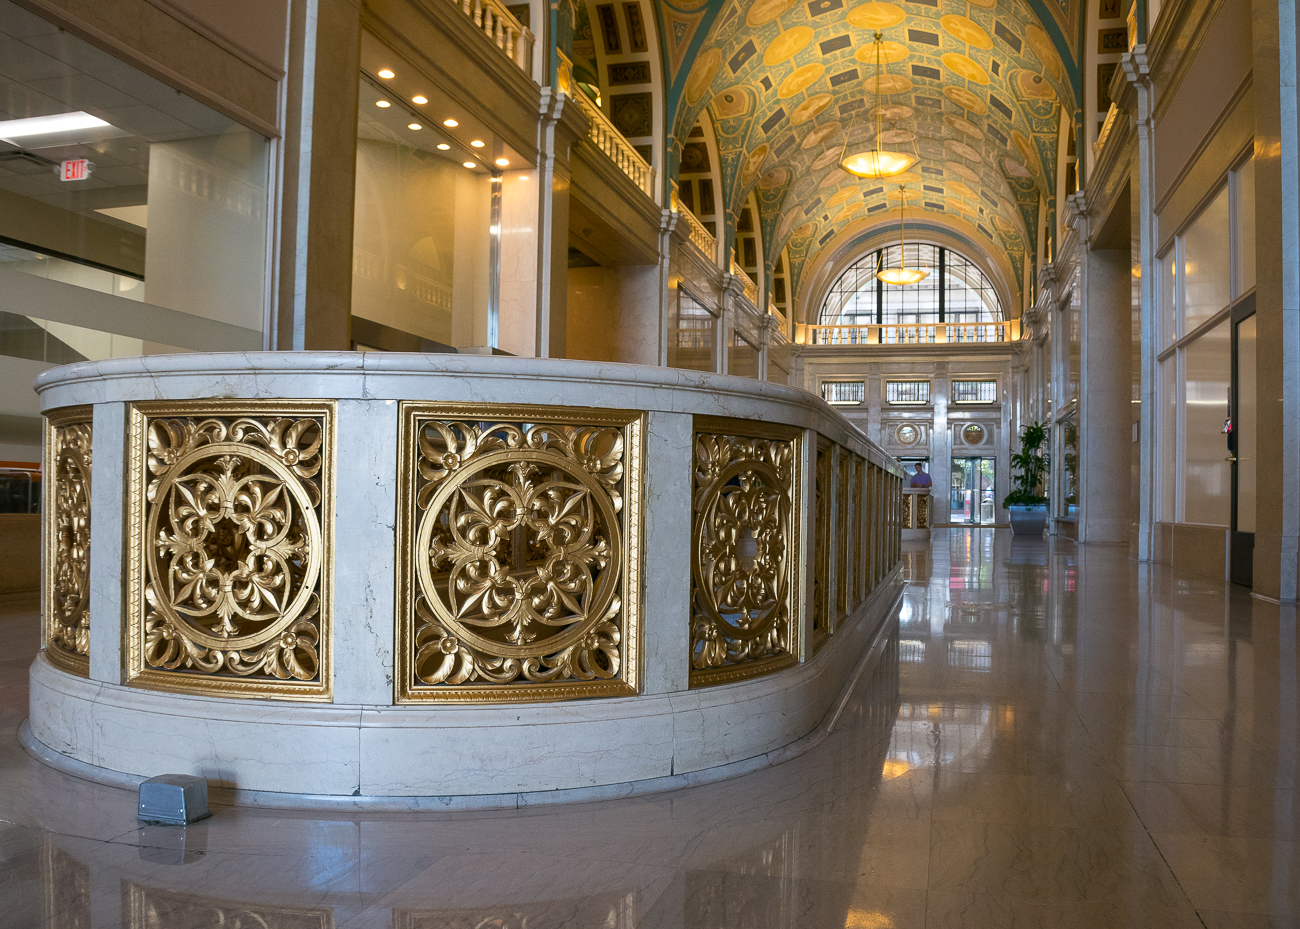 Today, Great American Insurance Company has offices with around 1400 employees in the building. During weekday work hours, visitors are permitted to enter the lobby to admire the 2-story ornate atrium and Art Deco details. / Image: Phil Armstrong, Cincinnati Refined // Published: 10.3.18